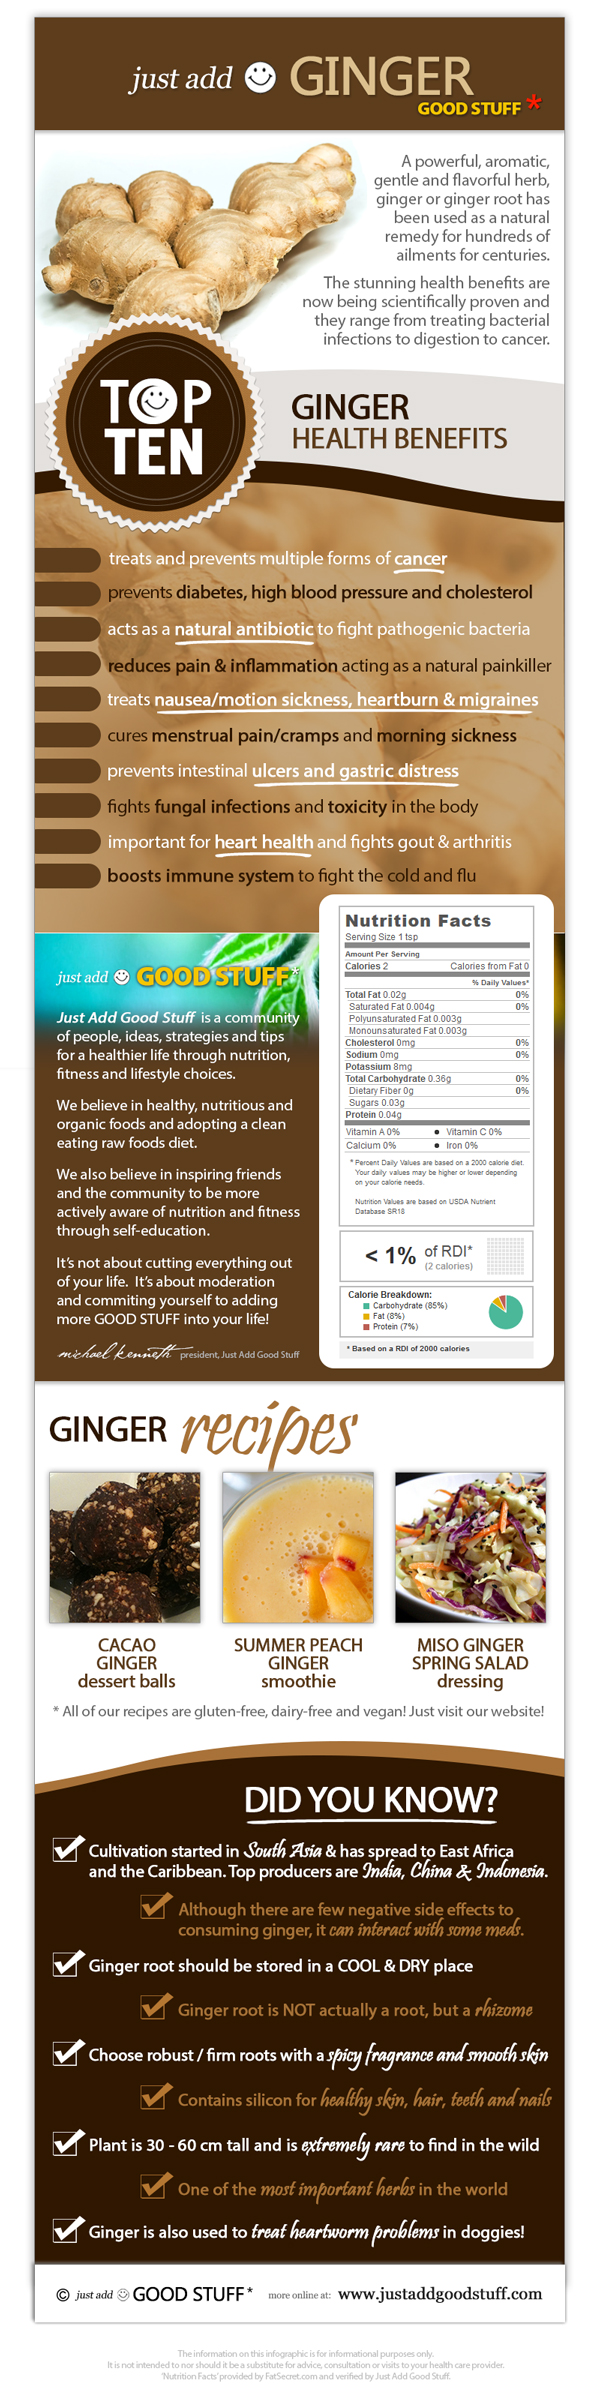 10 Ginger Benefits Infographic